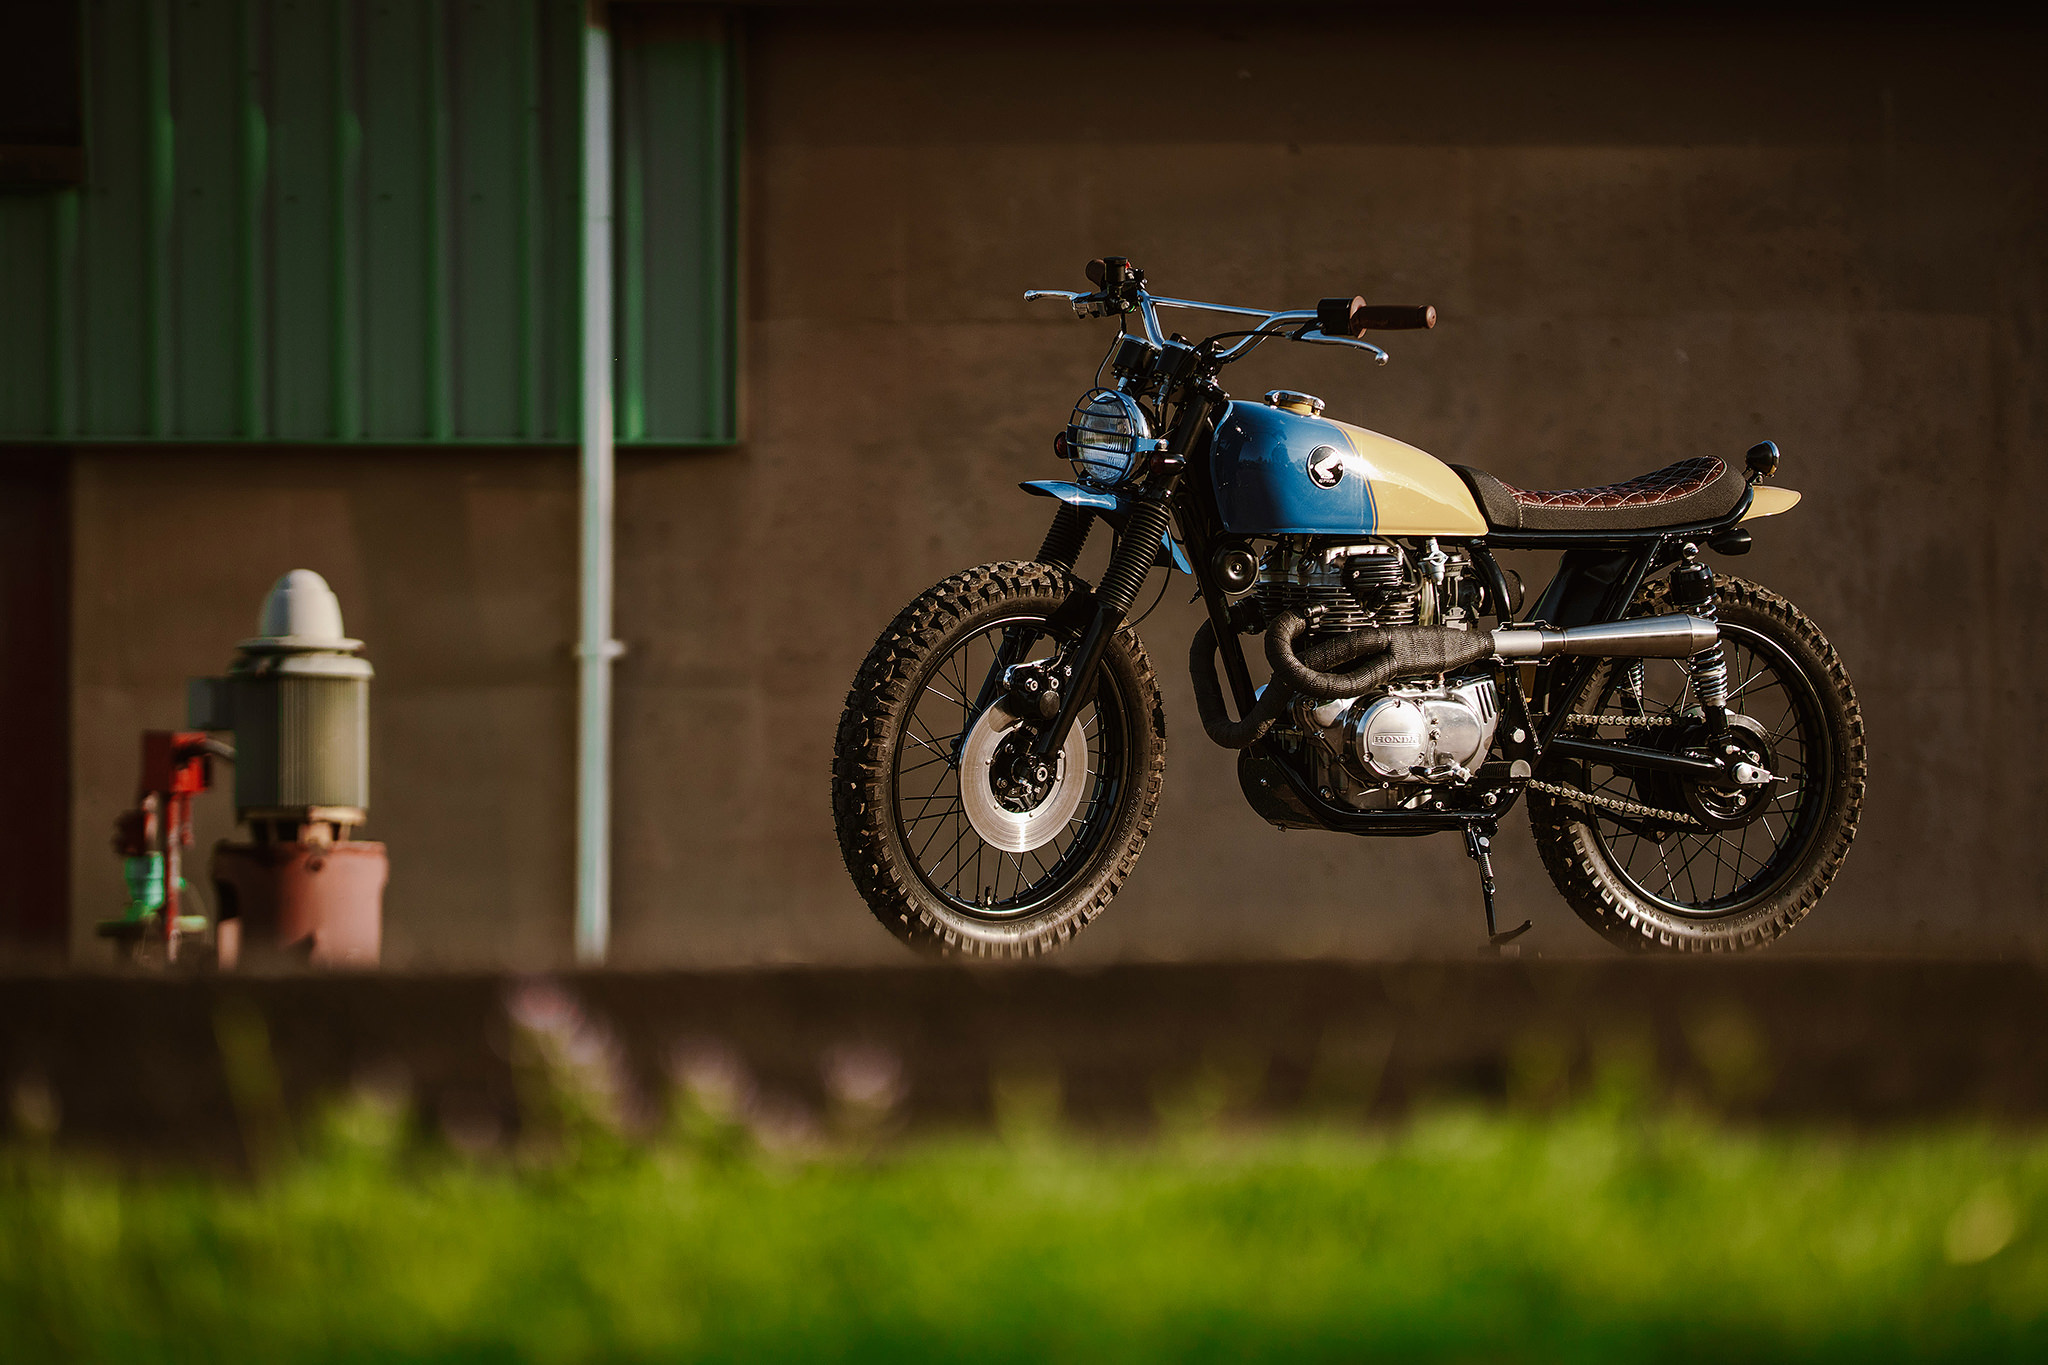 BJ Scrambler, Outdoor - 16.jpg